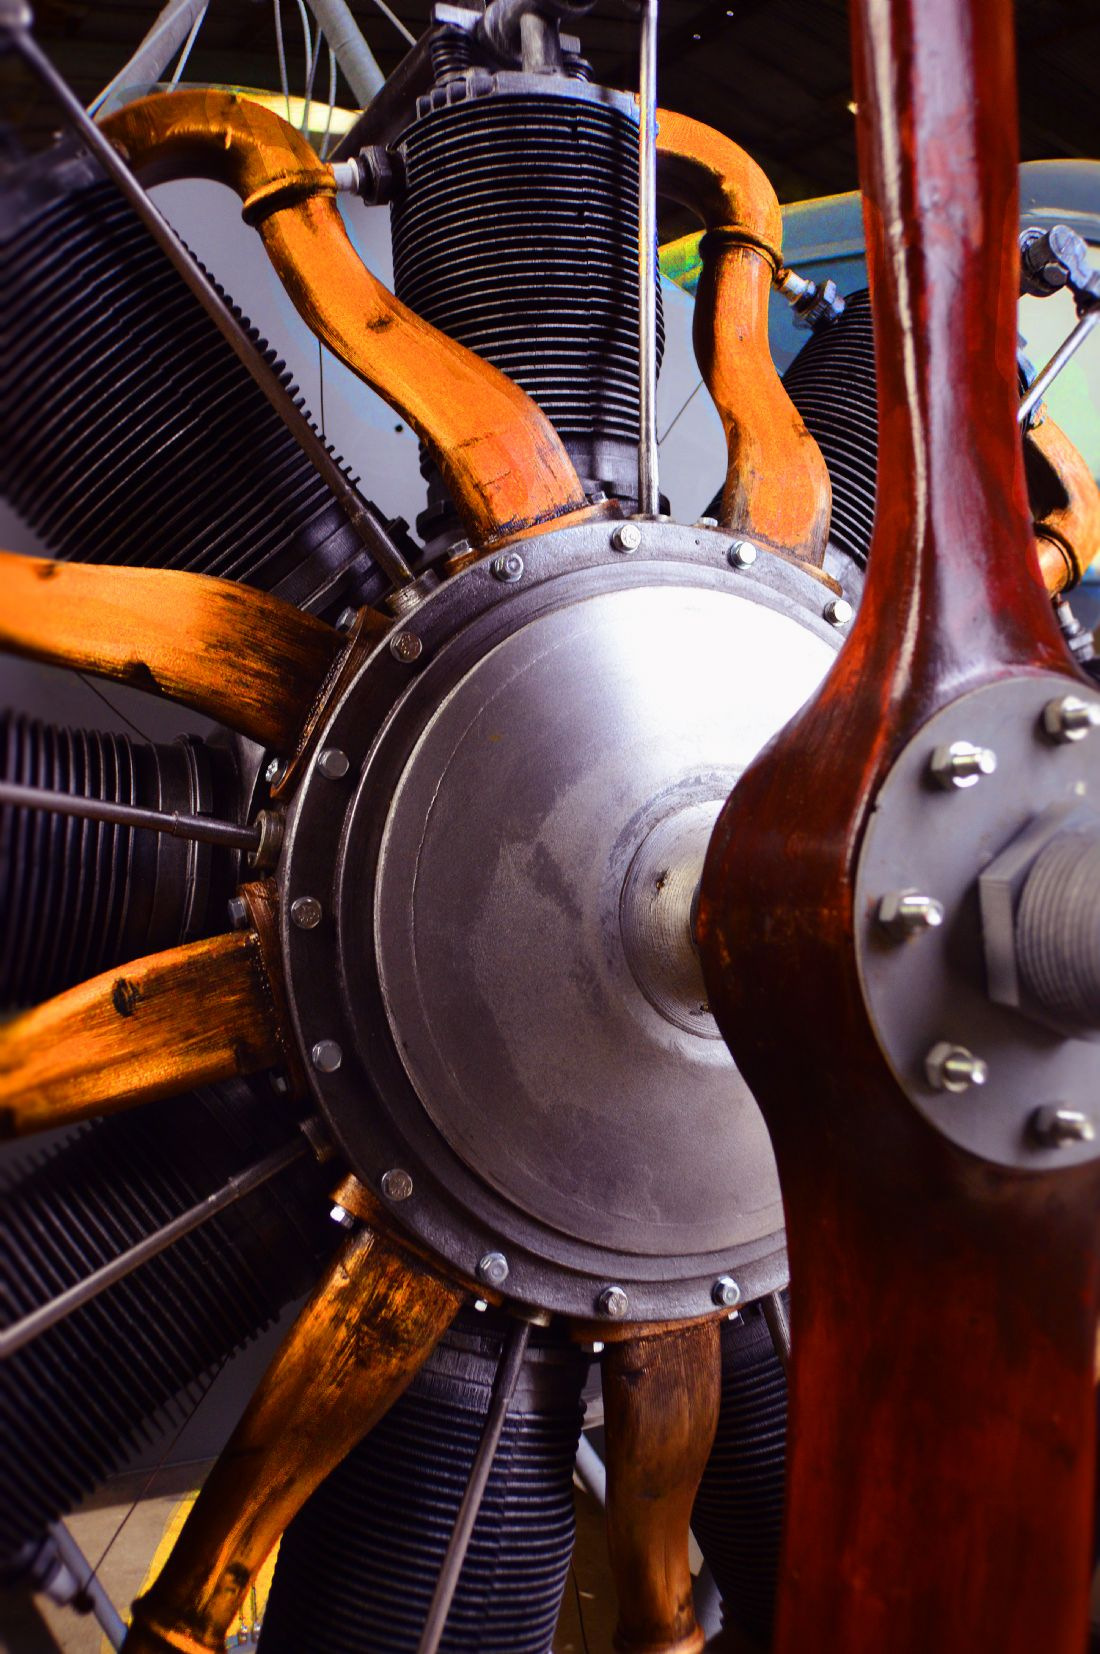 antony atkinson | Airoplane Flight propeller Engine from a Plane